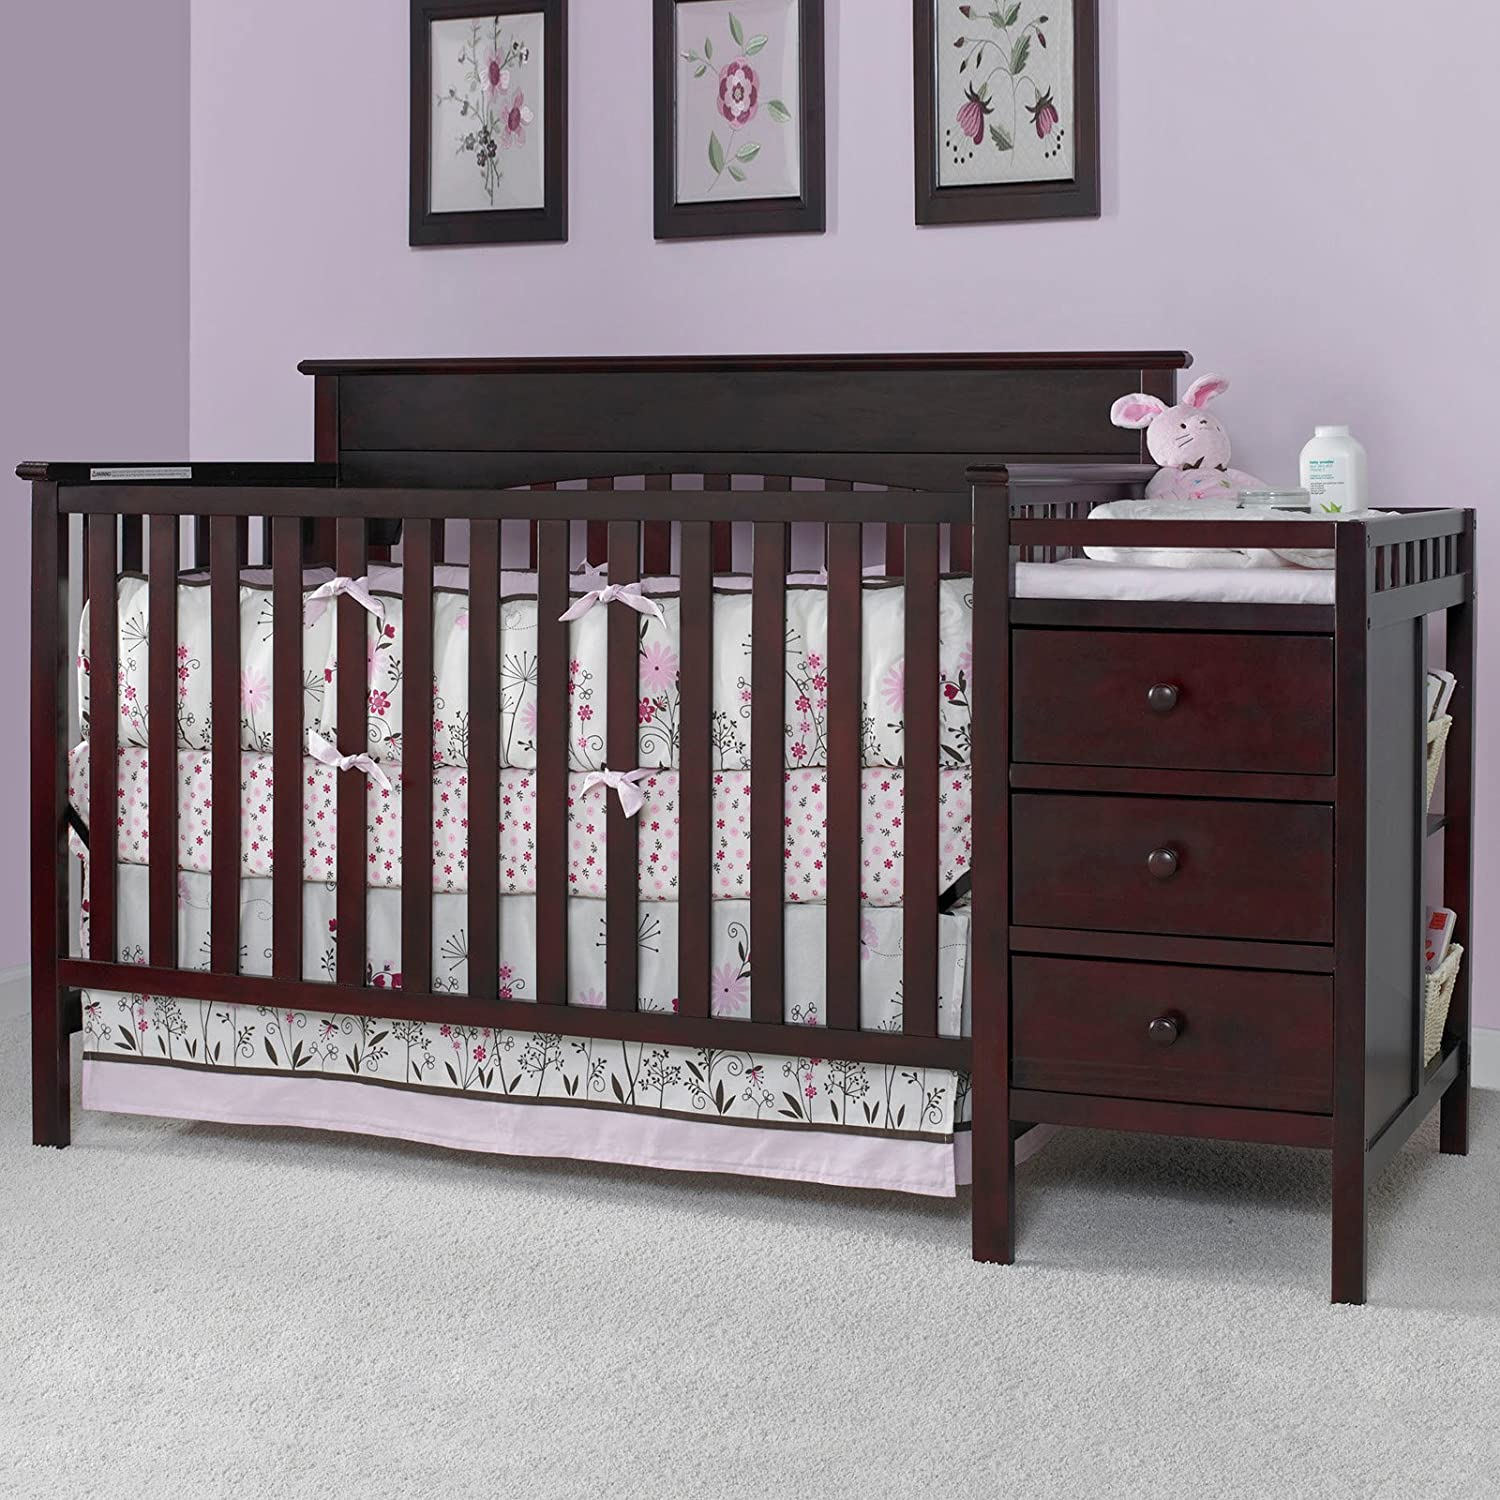 should graco signature baby crib l convertible improvement lauren cribs rails you consider bed home questions